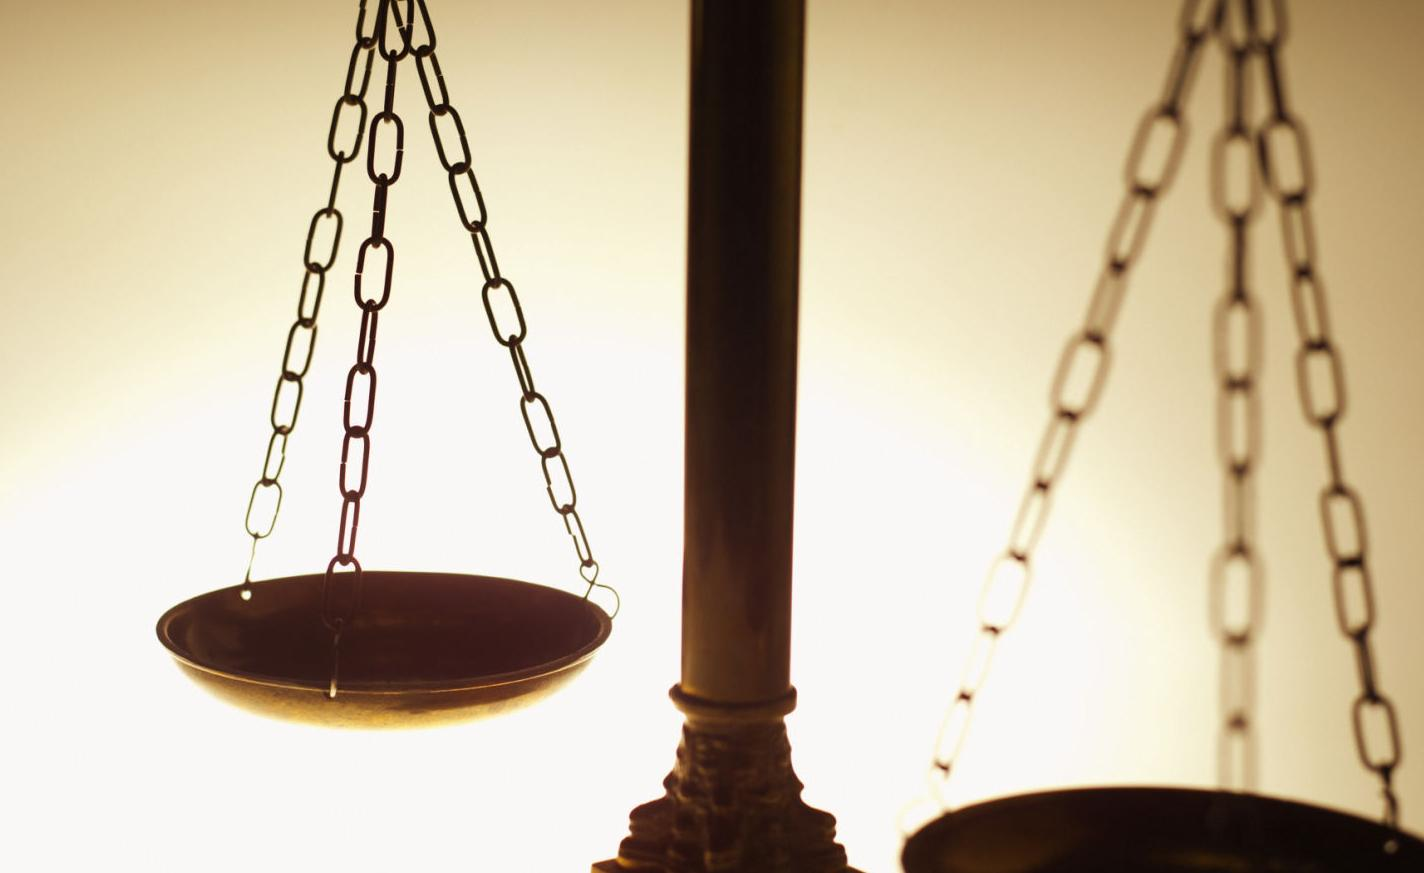 Charity con man can be asked to pay restitution, court rules